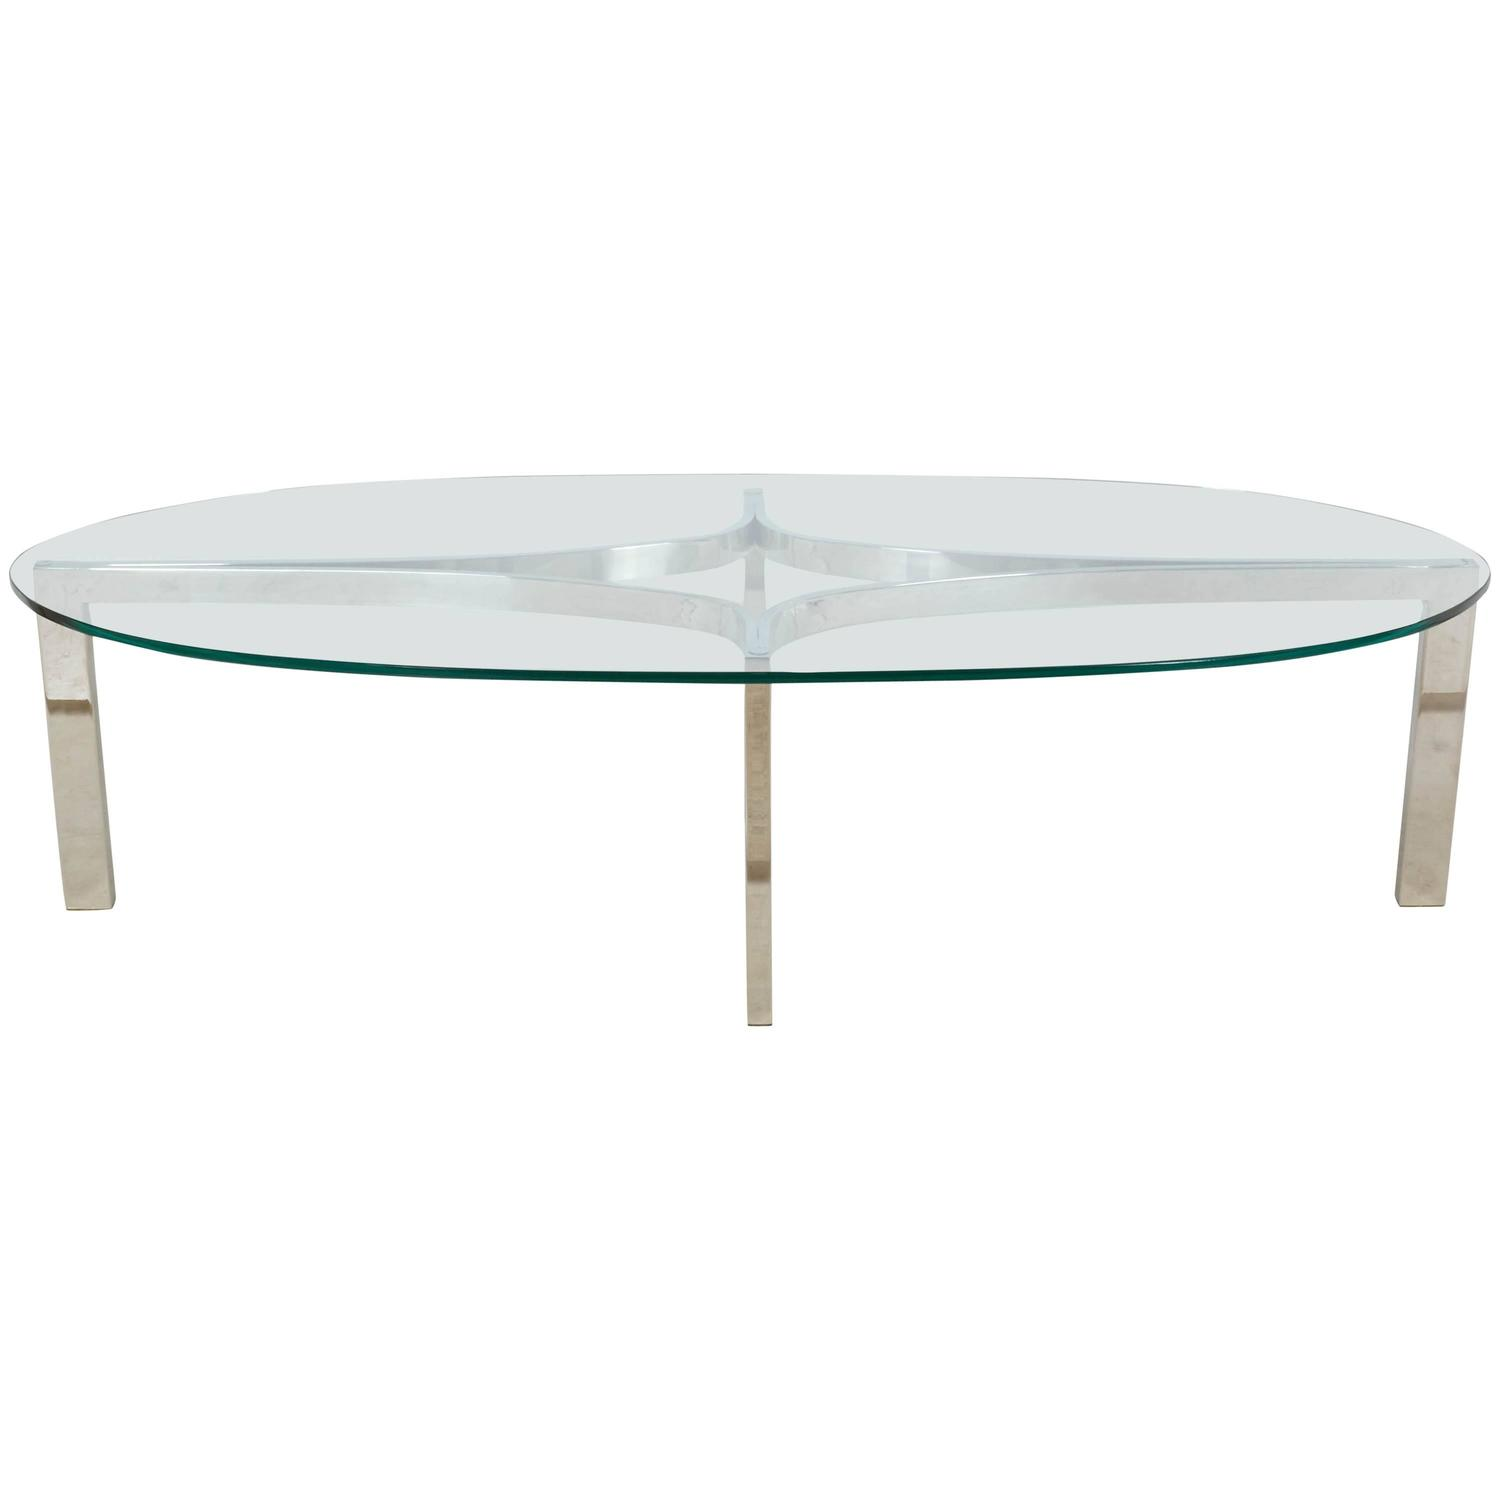 Chrome and glass sculptural oval coffee table at 1stdibs for Oval glass coffee table